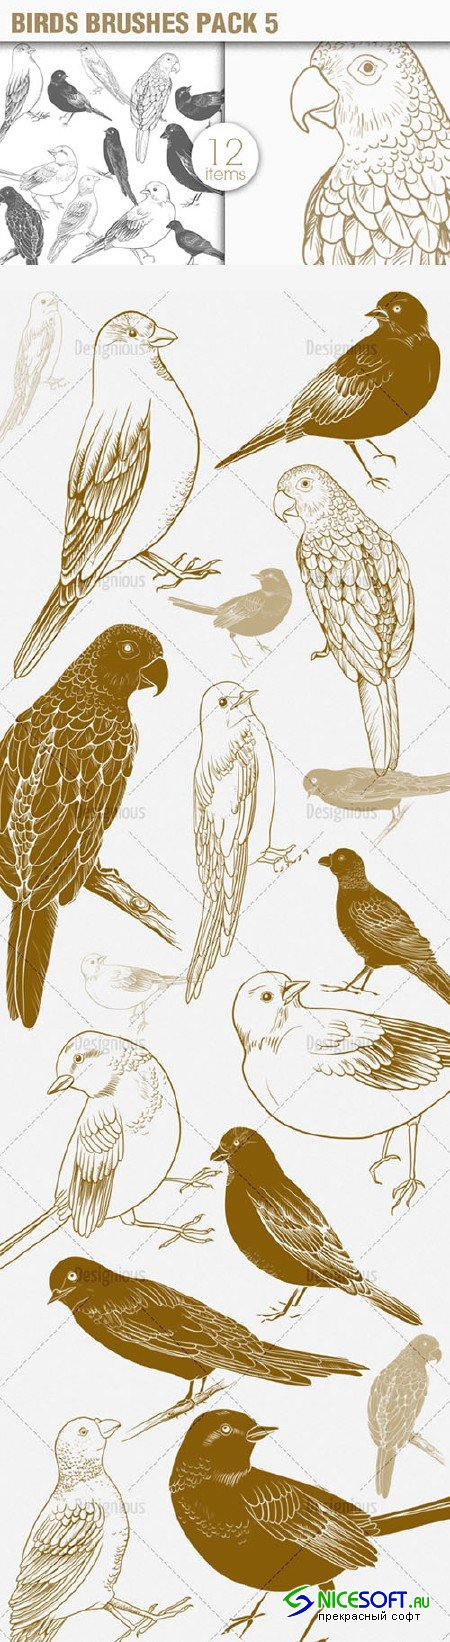 Birds Photoshop Brushes Pack 5